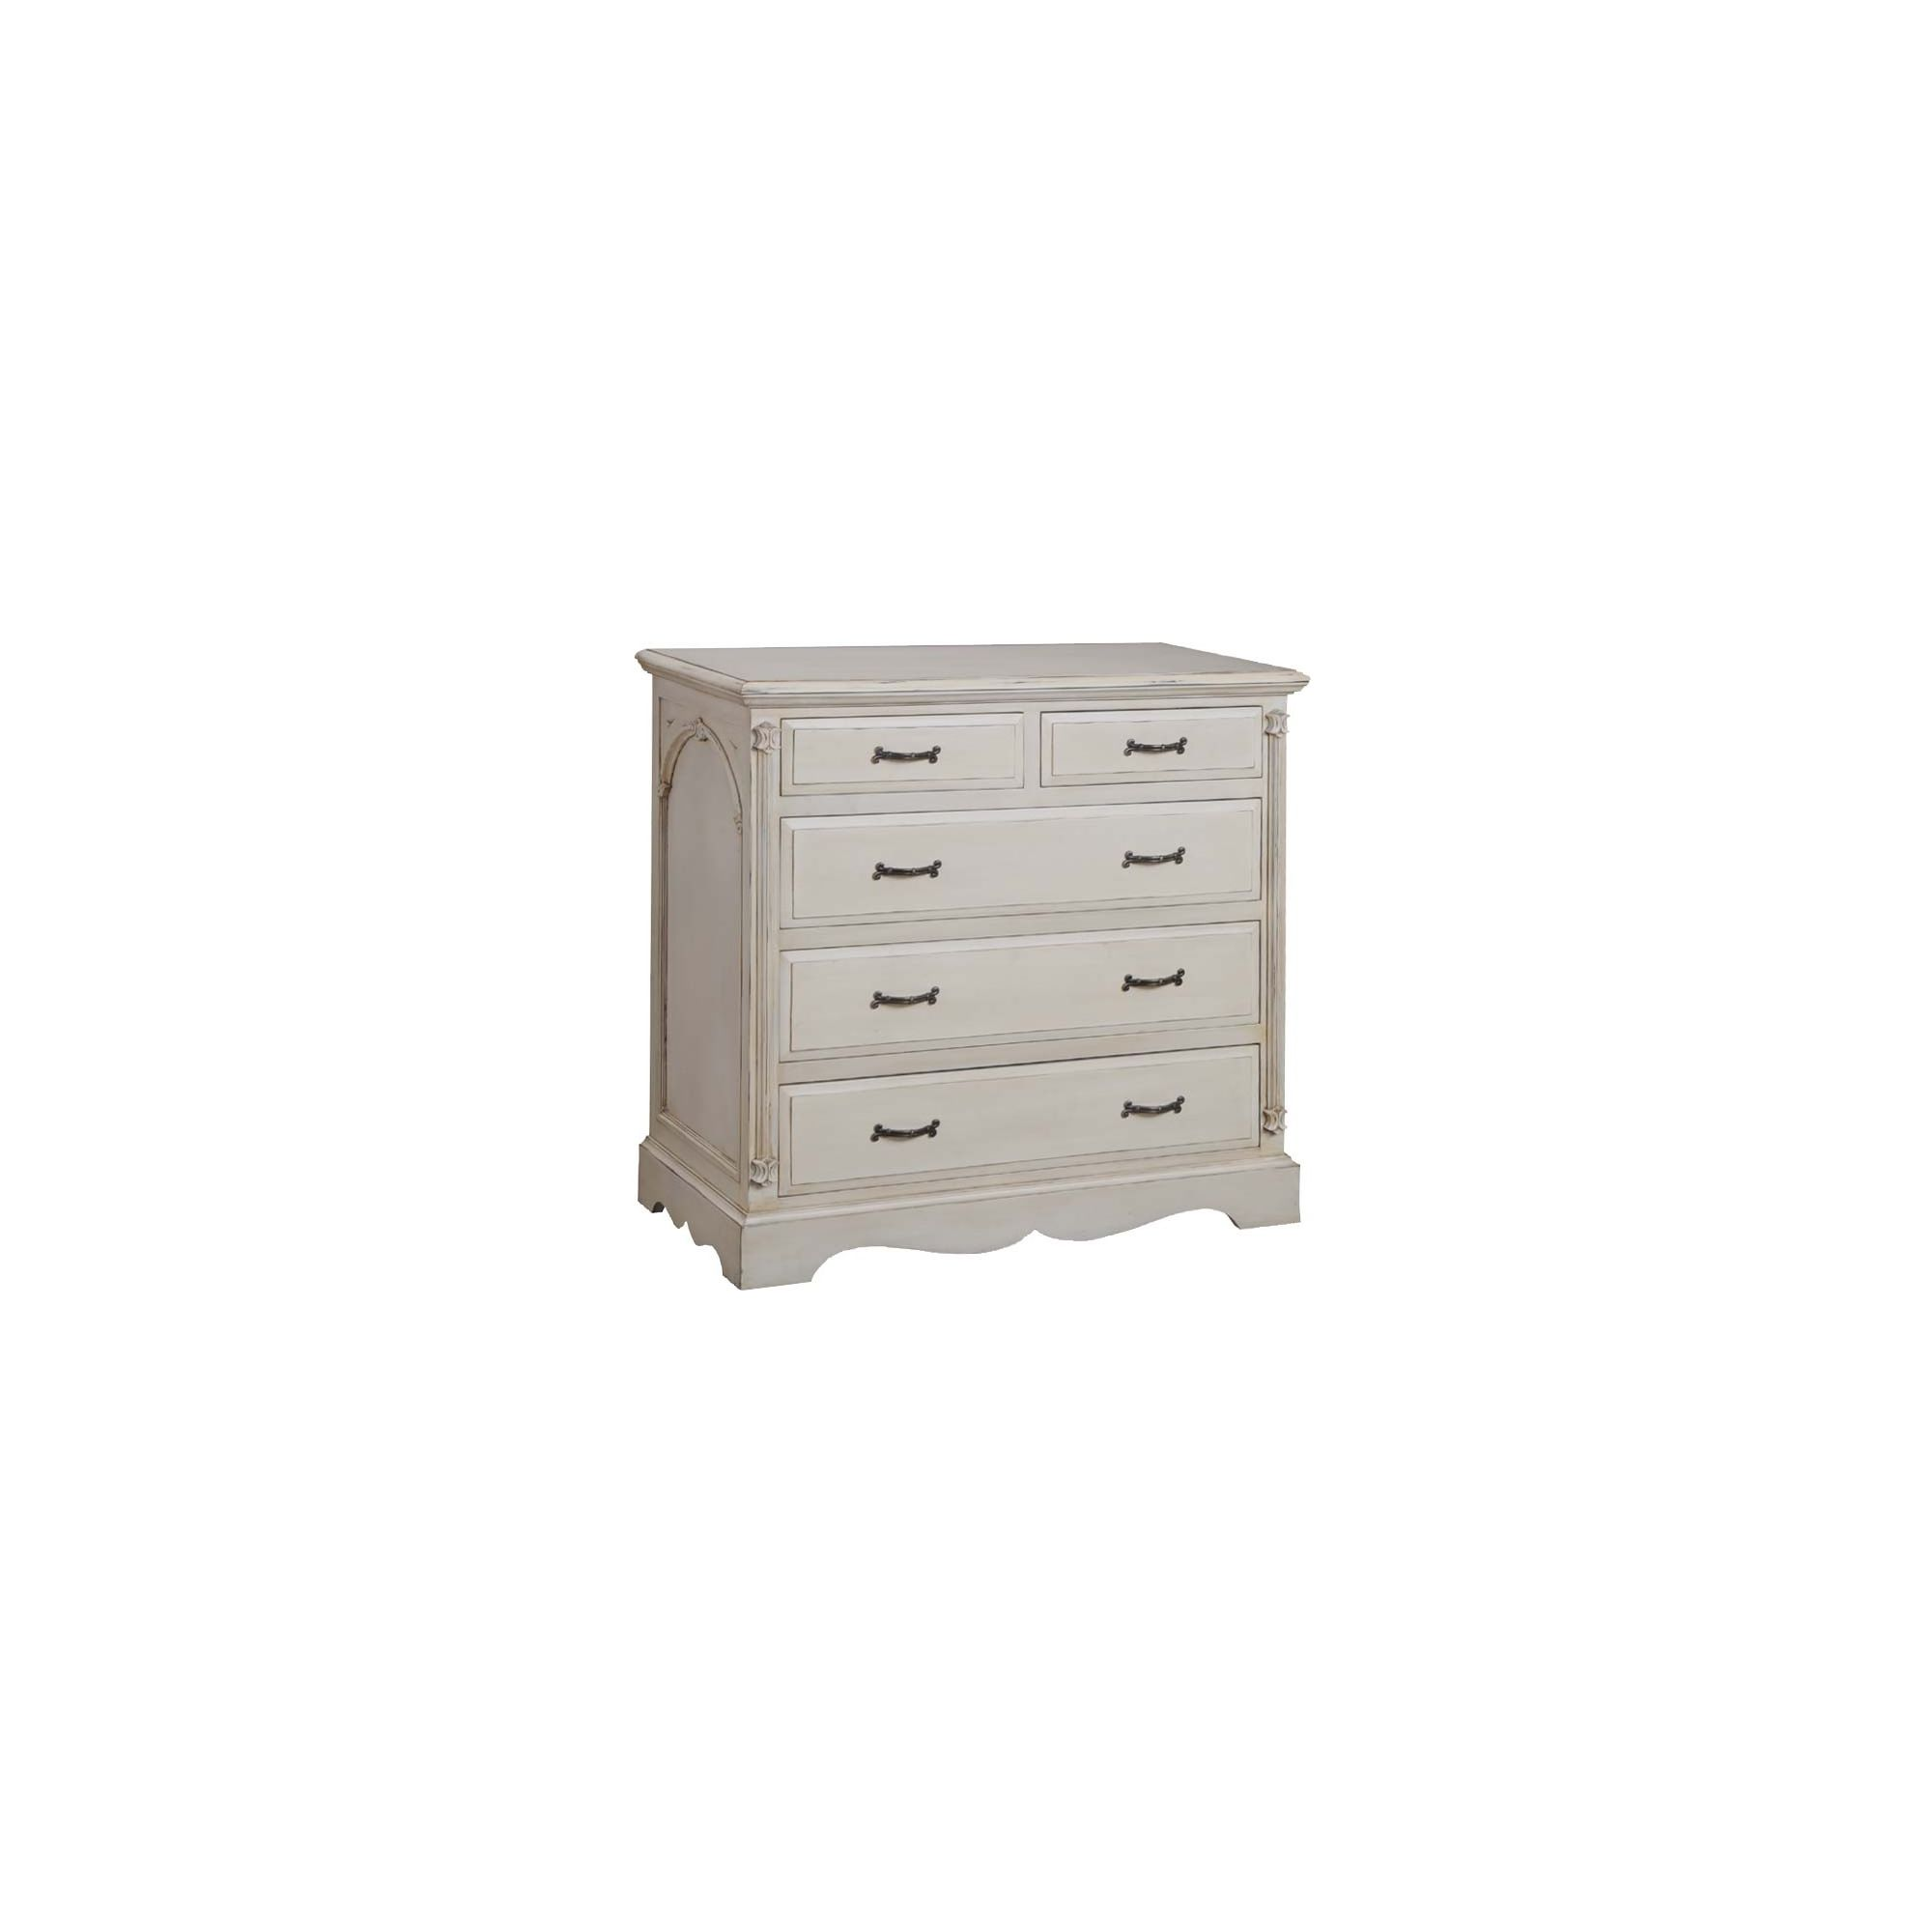 Thorndon Beverley Bedroom Five Drawer Chest in Distressed Ivory at Tesco Direct